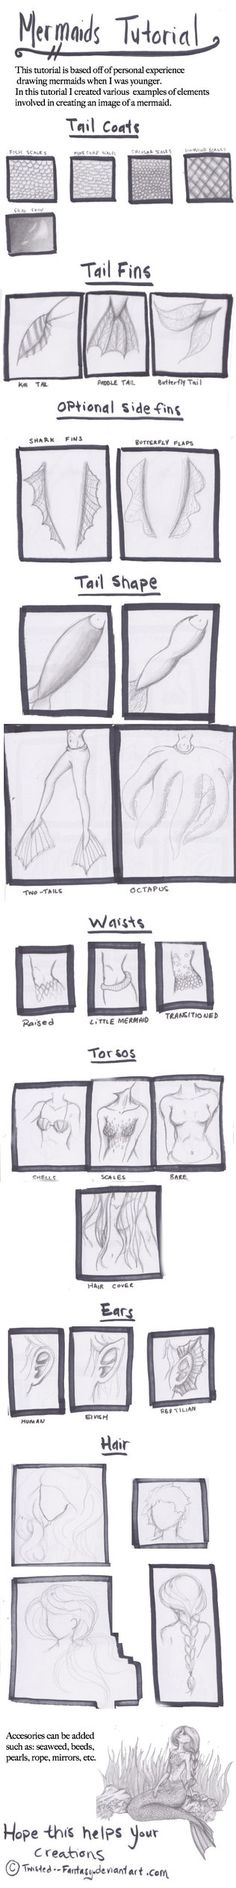 Mermaid Tutorial by Twisted--Fantasy on deviantART